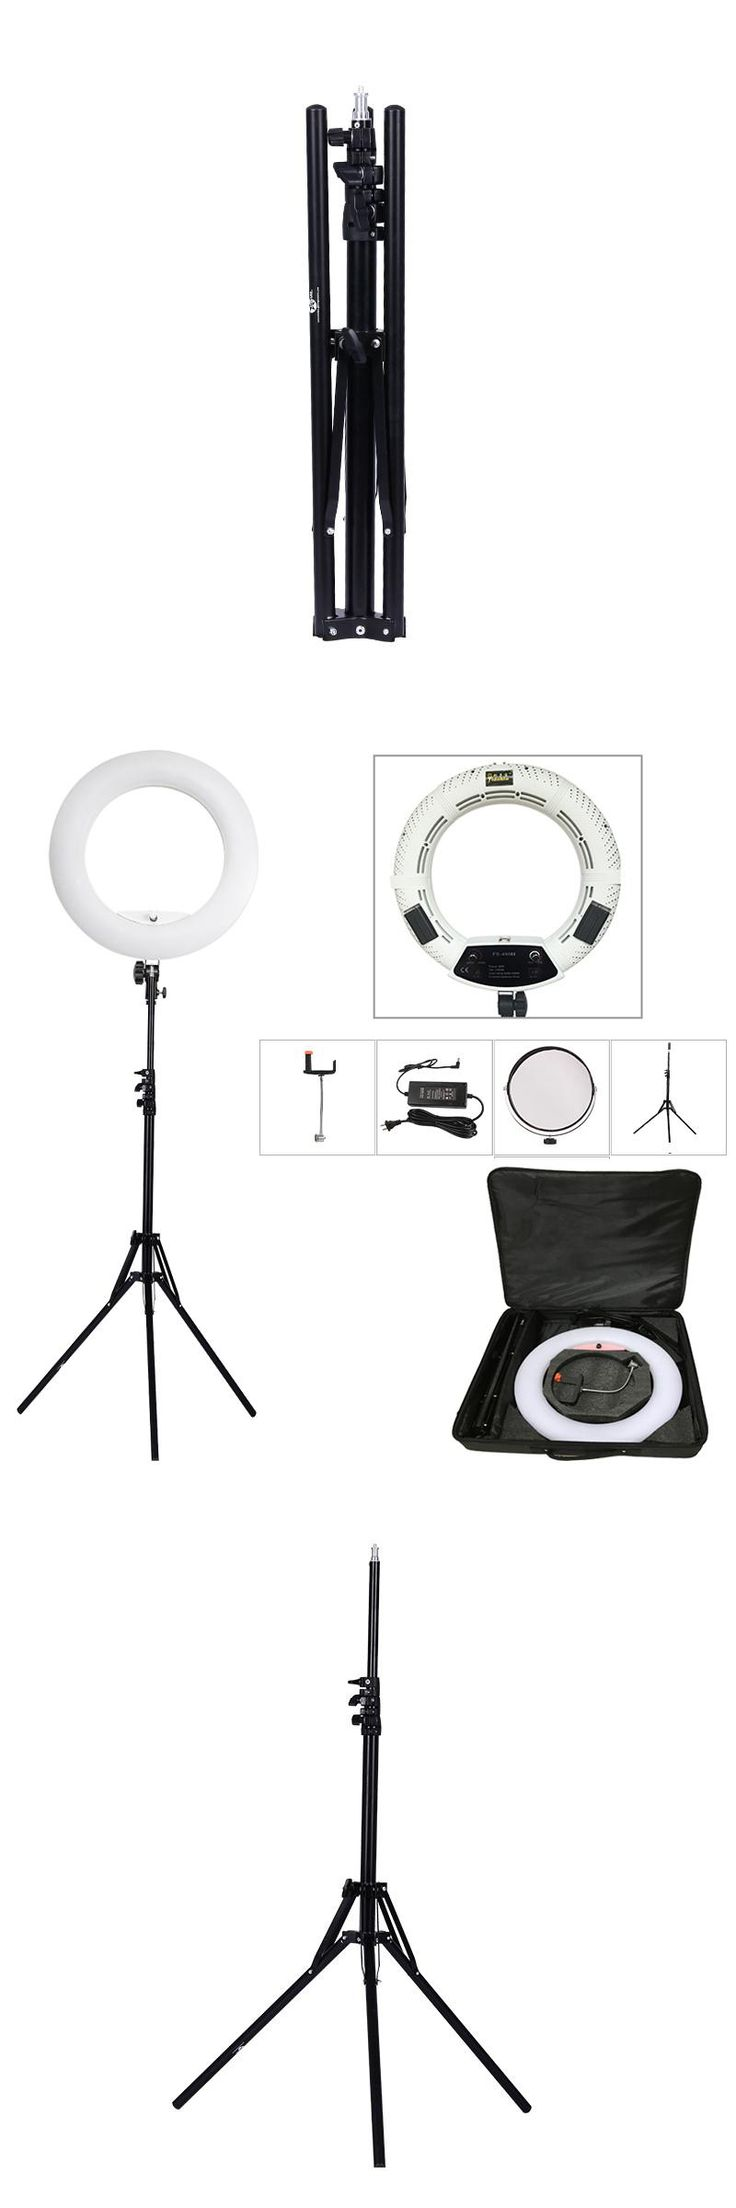 Die besten 25 led lampe ring ideen auf pinterest led led licht yidoblo white fs 480ii 5500k dimmable camera pro 2 color adjustable 1855w 480 parisarafo Choice Image